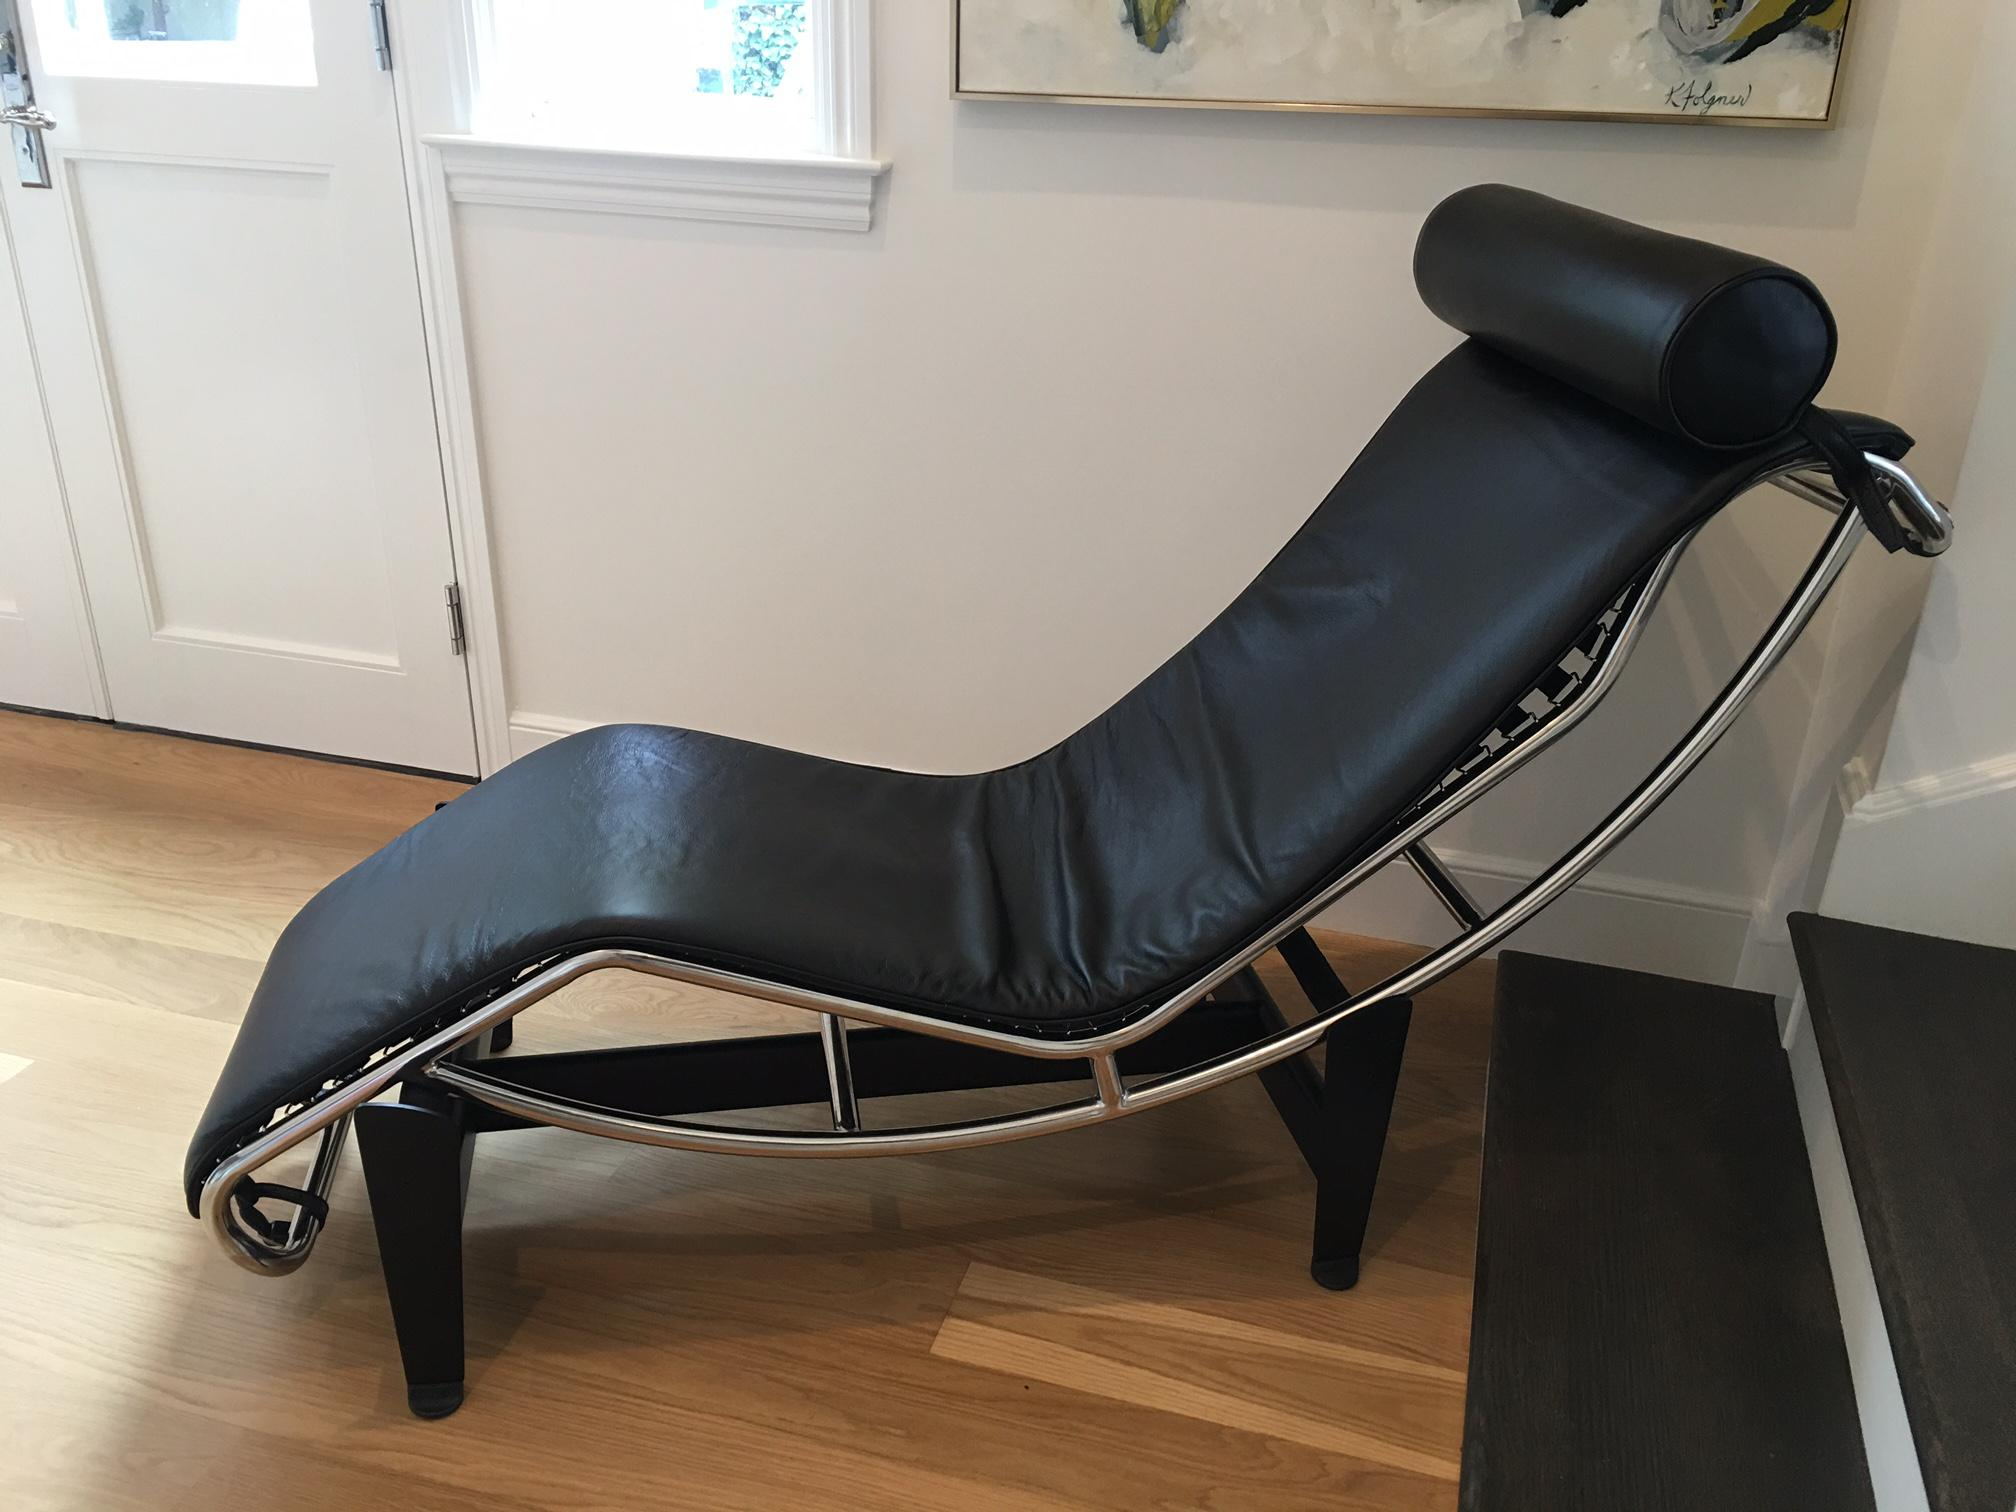 Beautiful Midcentury Modern Le Corbusier Lc Style Chaise Lounge Chair